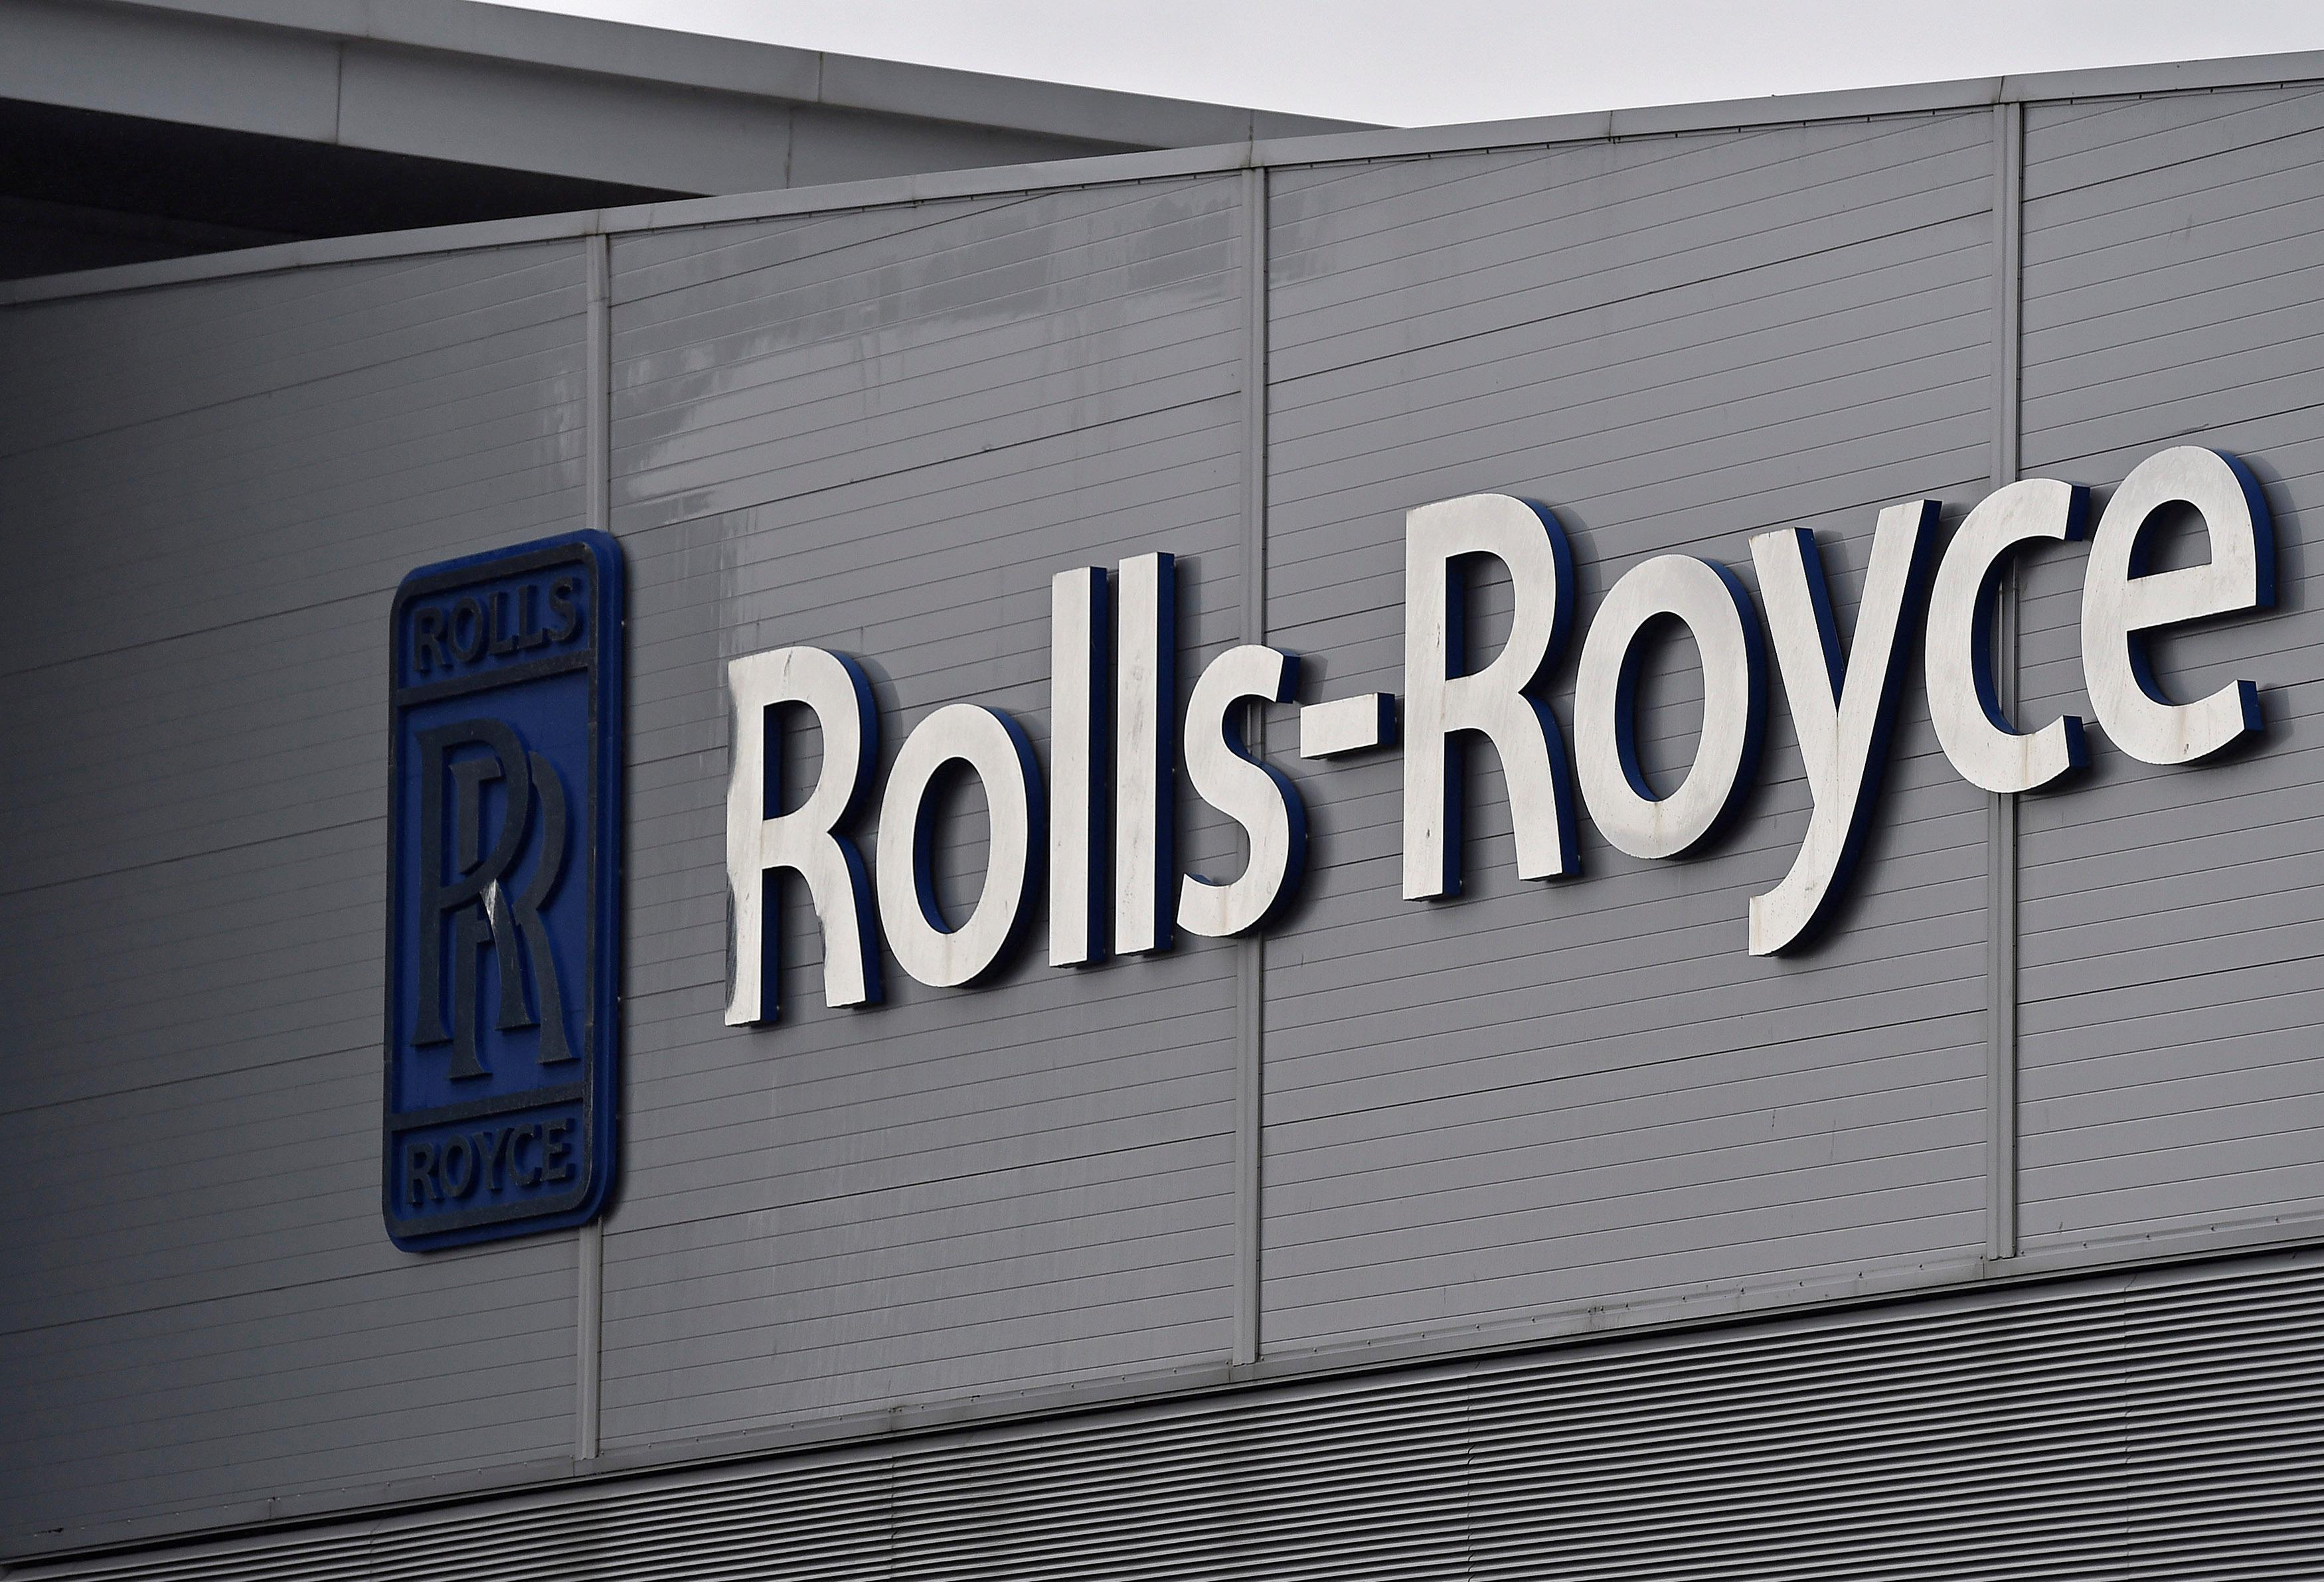 Rolls-Royce takes another $1 billion hit to fix problem engine